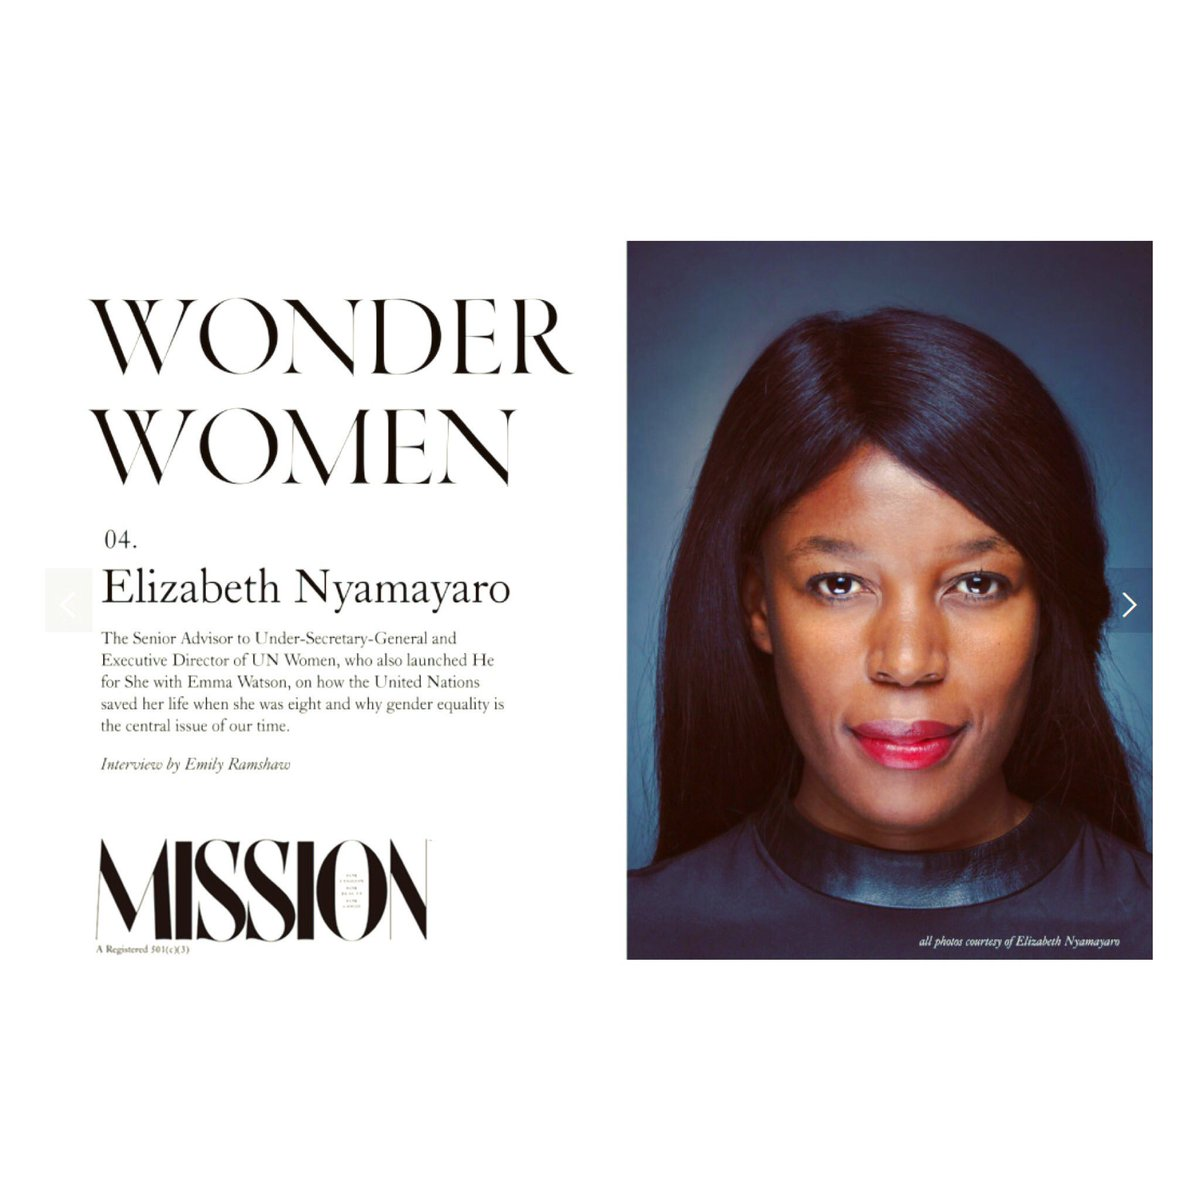 Not sure how, but txs @Mission_Mag for including me in the #WonderWomen series...#nopressure #genderequality #missionmagazine:  https://t.co/gVmGLvjyQG https://t.co/CM5lDJVC5A